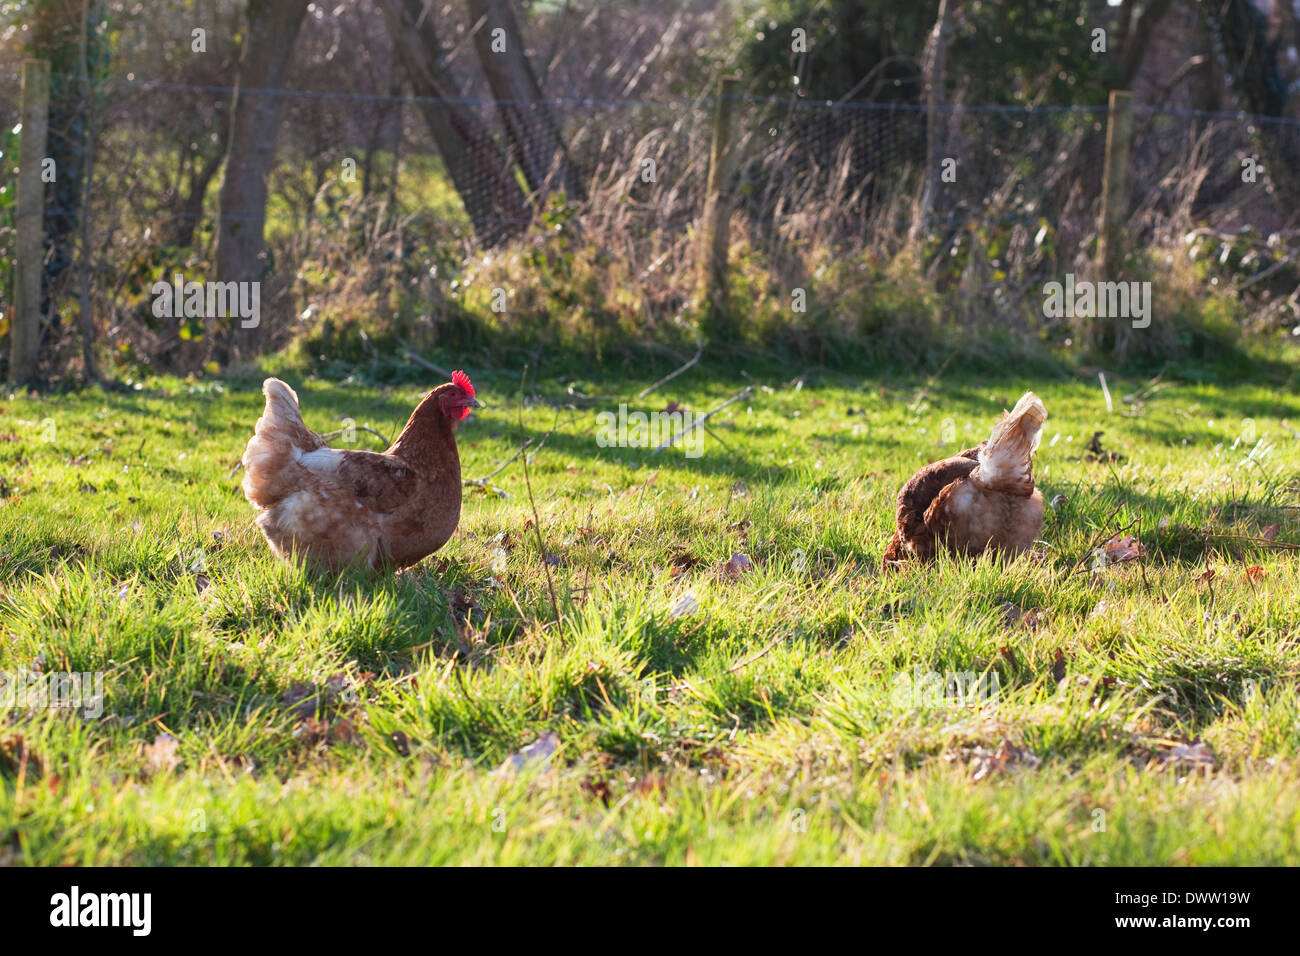 Free-range hens roaming in a field - Stock Image